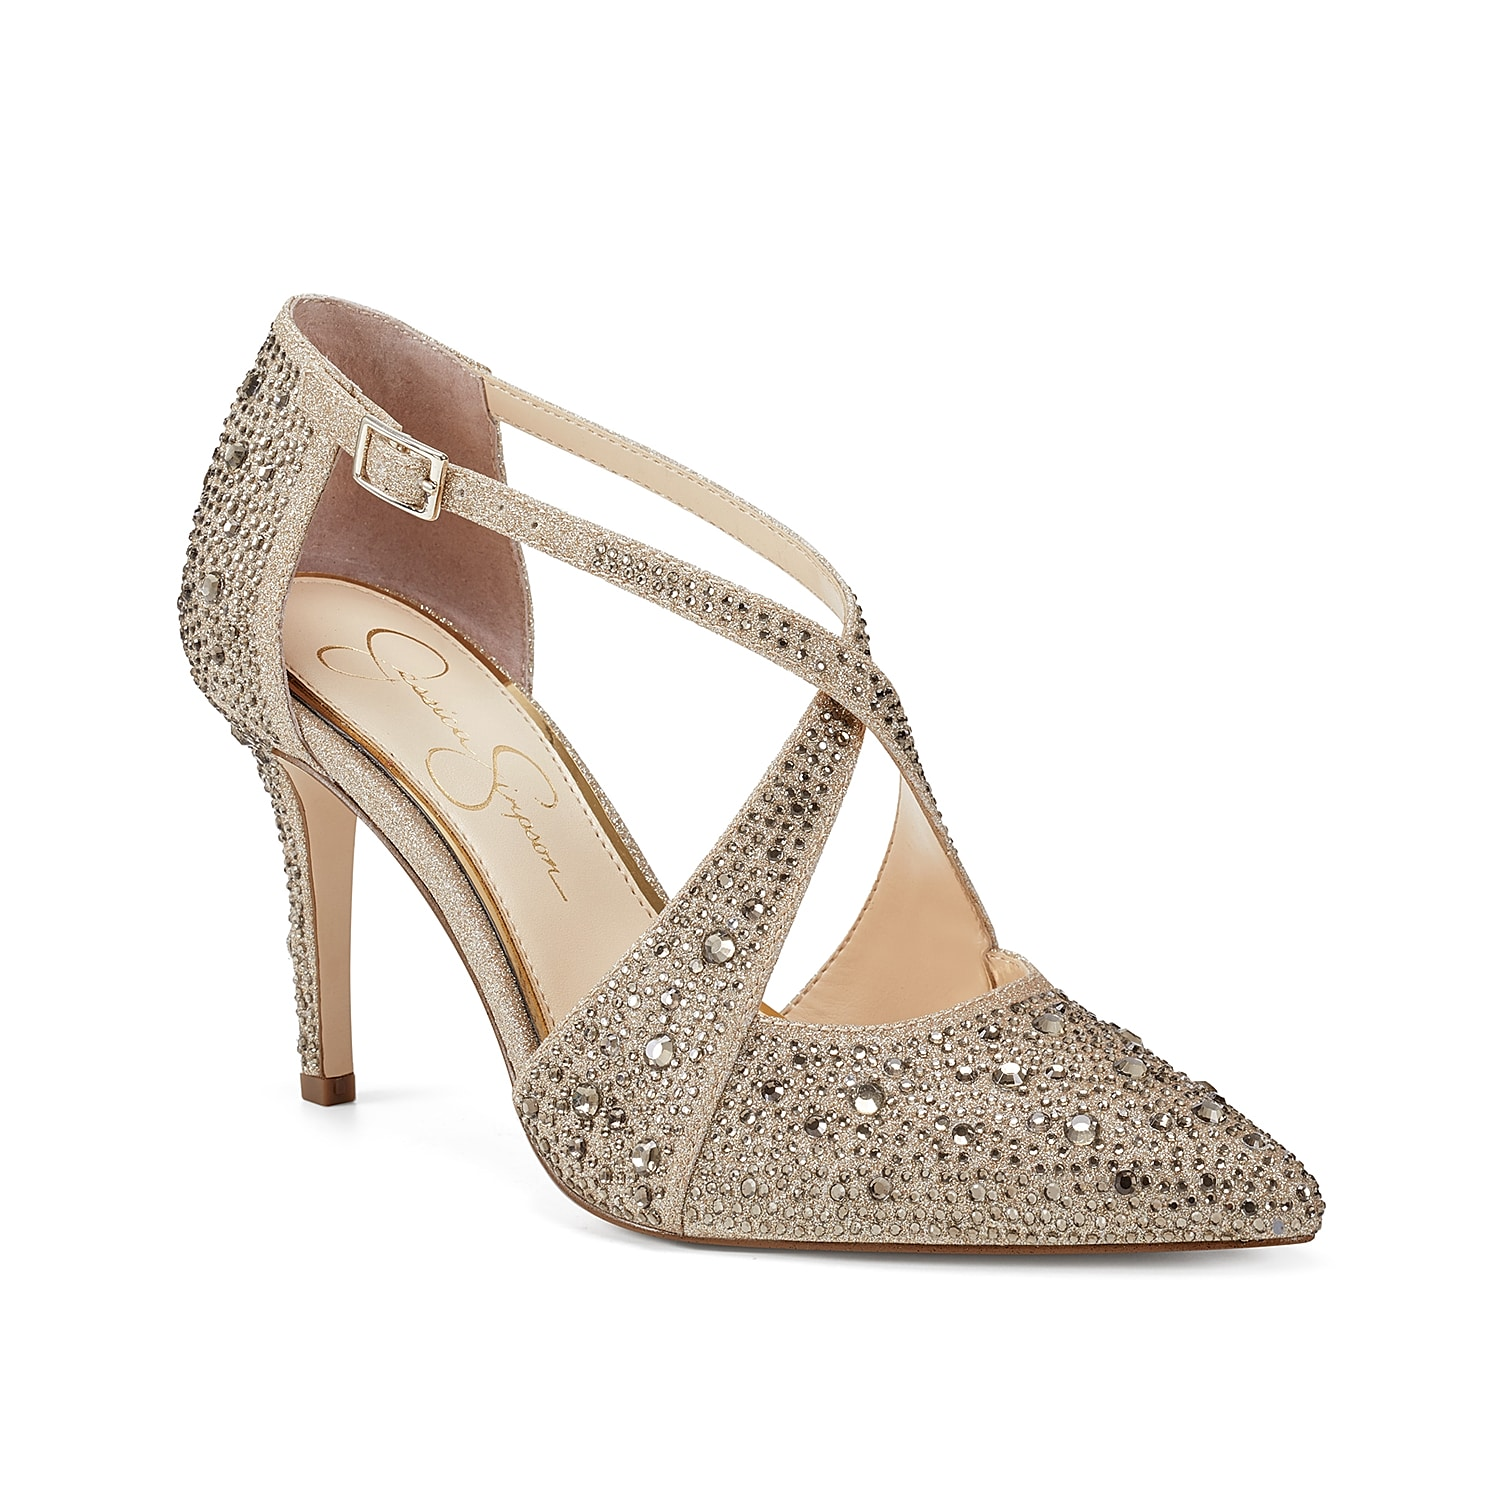 Complement elegant looks with the Accule pump from Jessica Simpson. This shimmering pair features bold criss cross straps and a rhinestone-embellished upper to catch eyes.